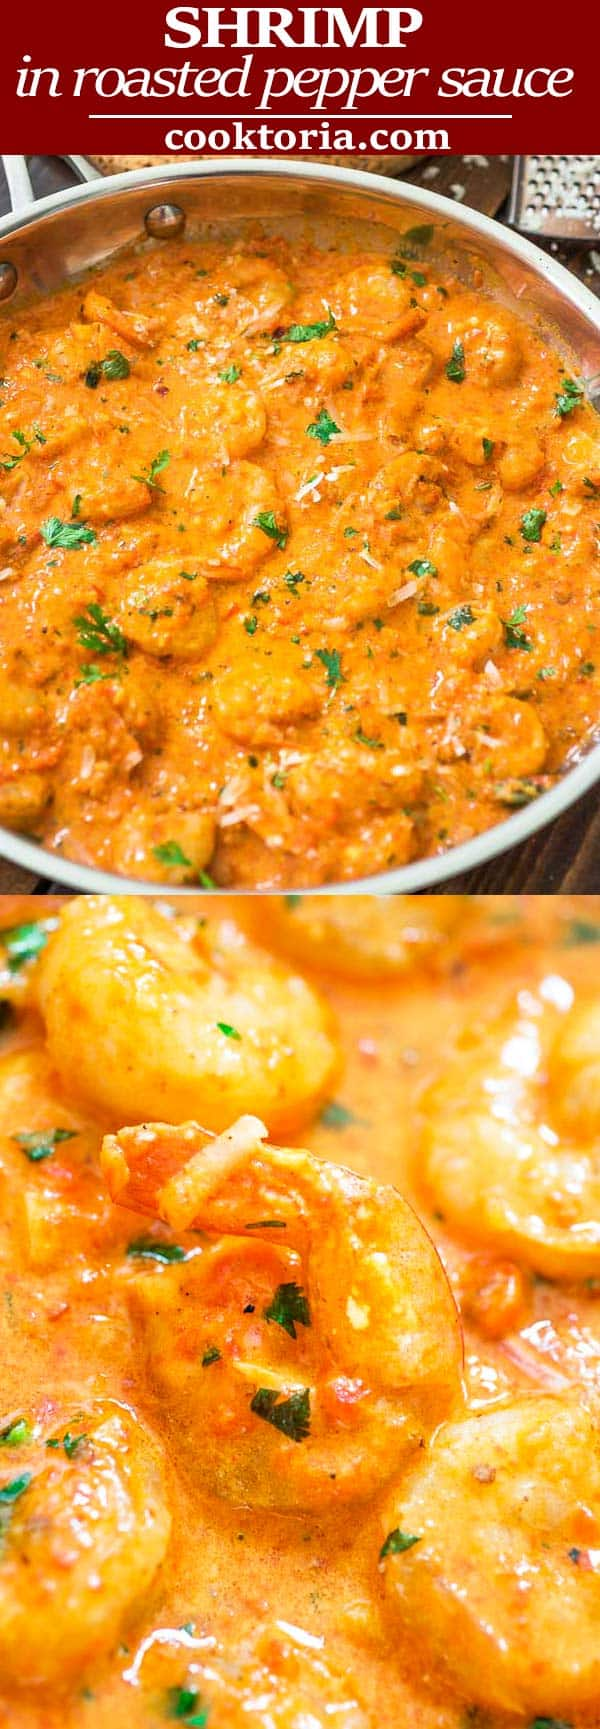 This Shrimp in Roasted Pepper Sauce is lip-smacking good! Roasted bell pepper paired with cream and Parmesan cheese create a very unique and delicious sauce.#shrimp #seafood #dinner